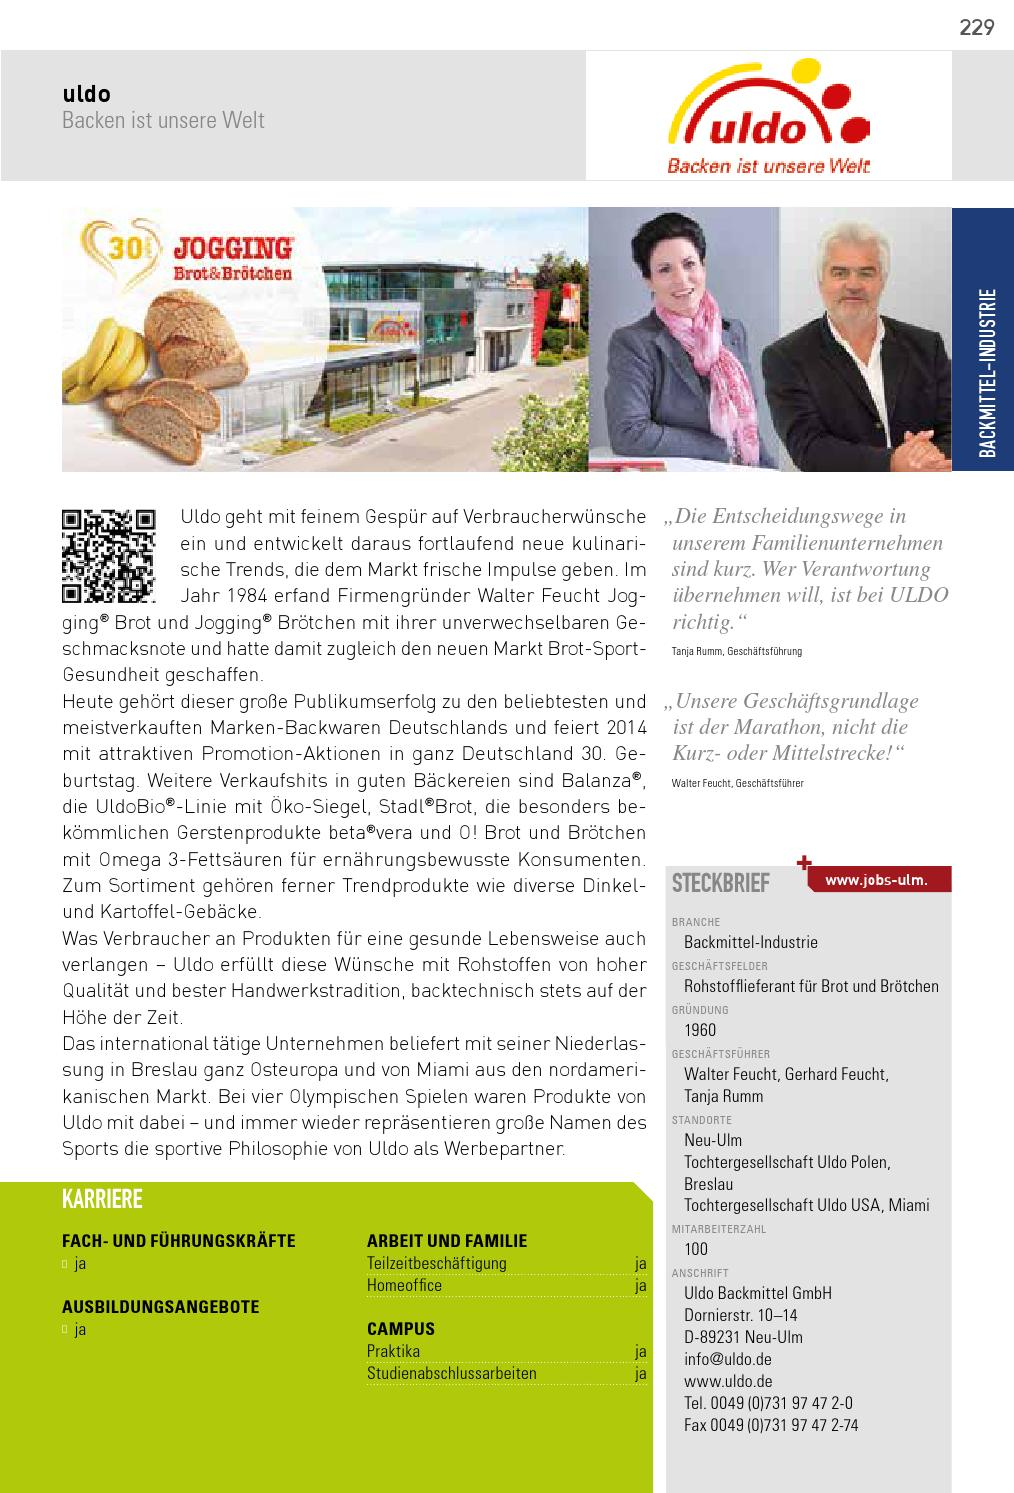 PROFILE ULM 2014 by SMK Medien GmbH & Co. KG | PROFFILE issuu